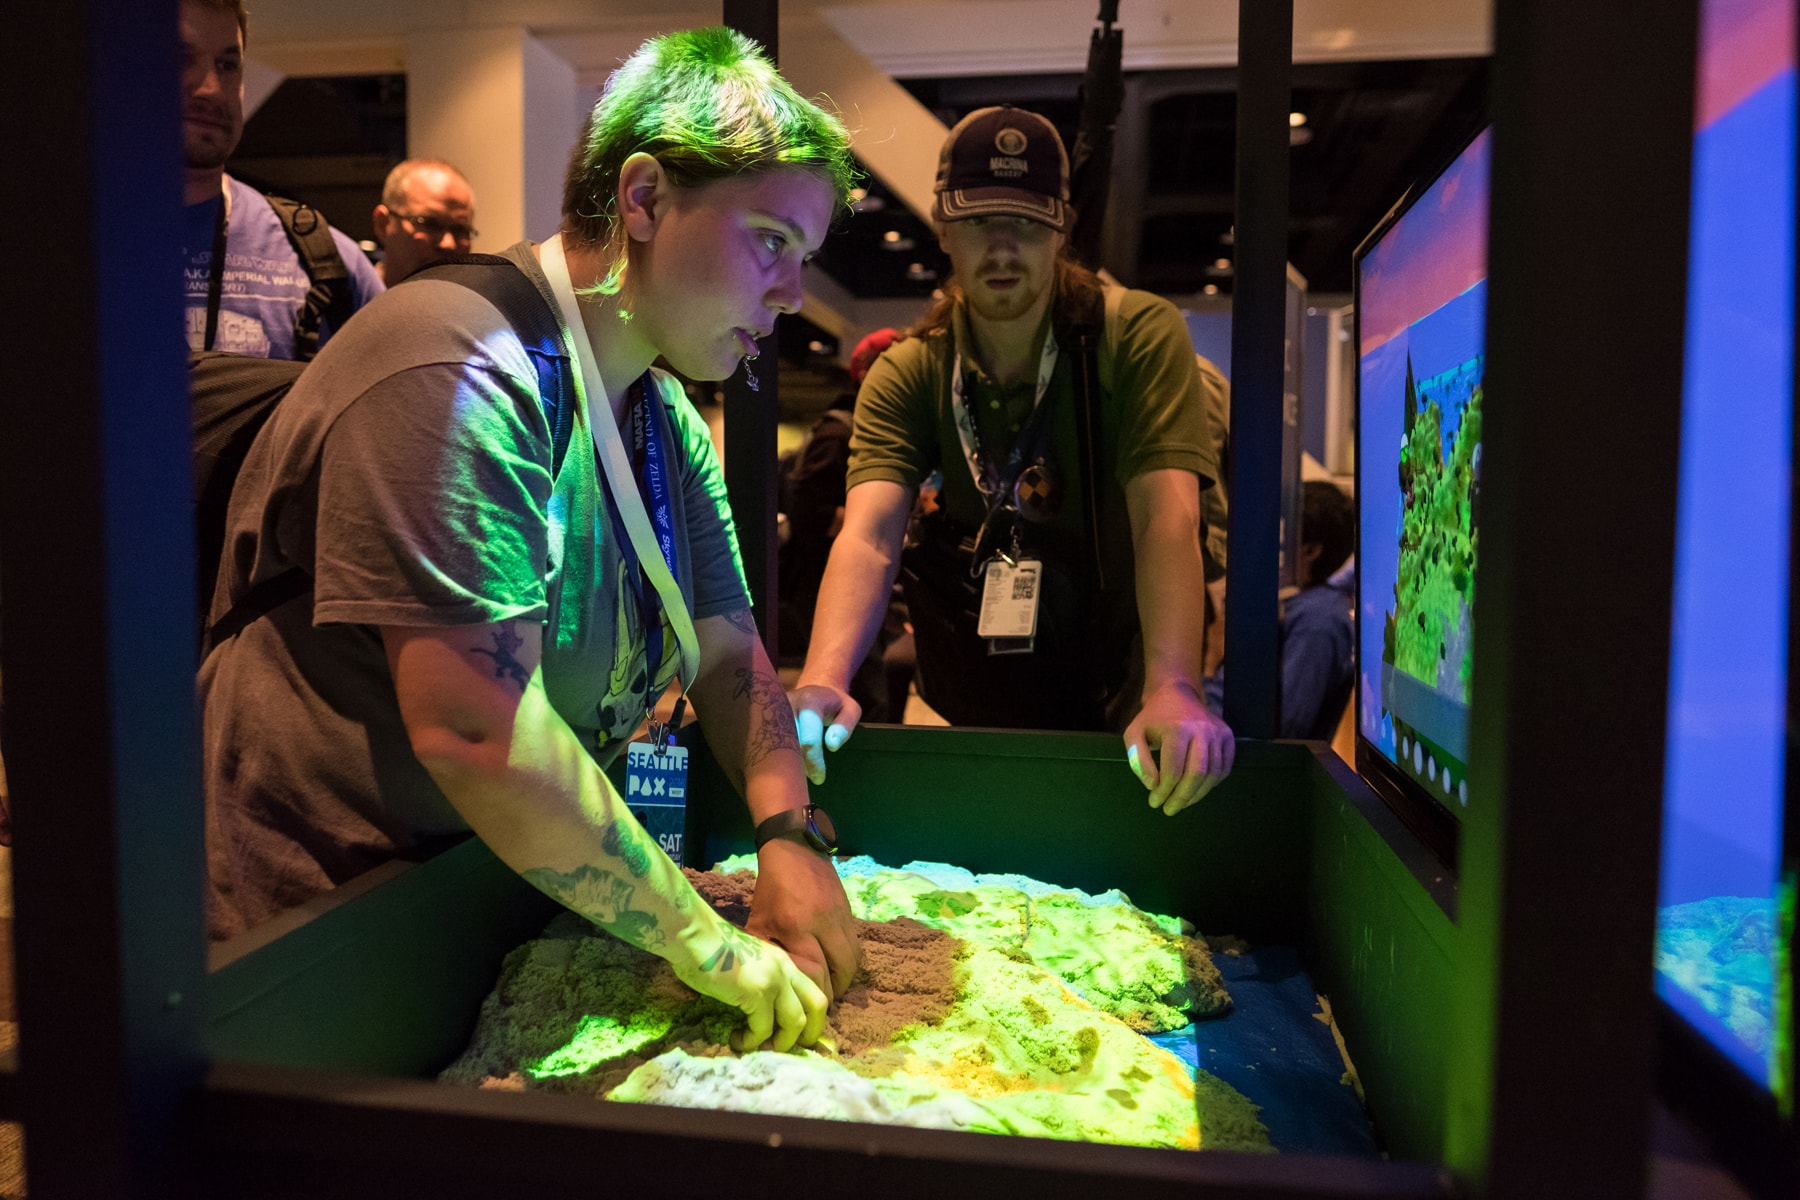 A PAX West attendee sculpting terrain by moving kinetic sand